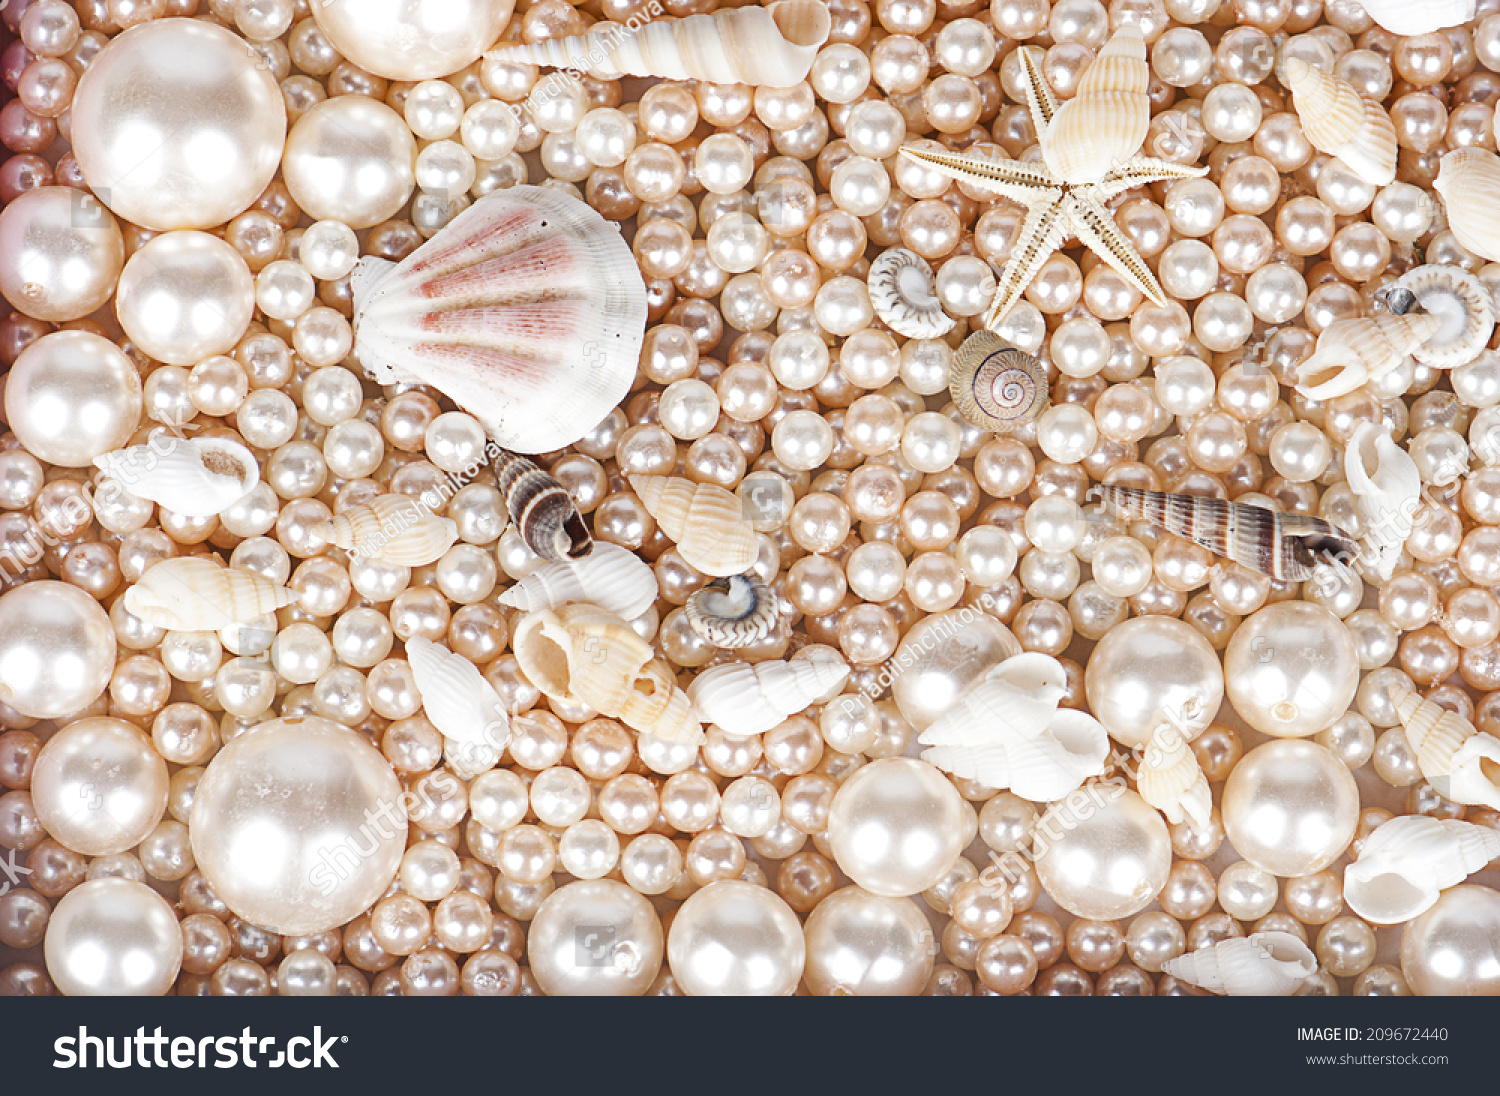 The Background Of Pearls And Sea Shells Stock Photo ...